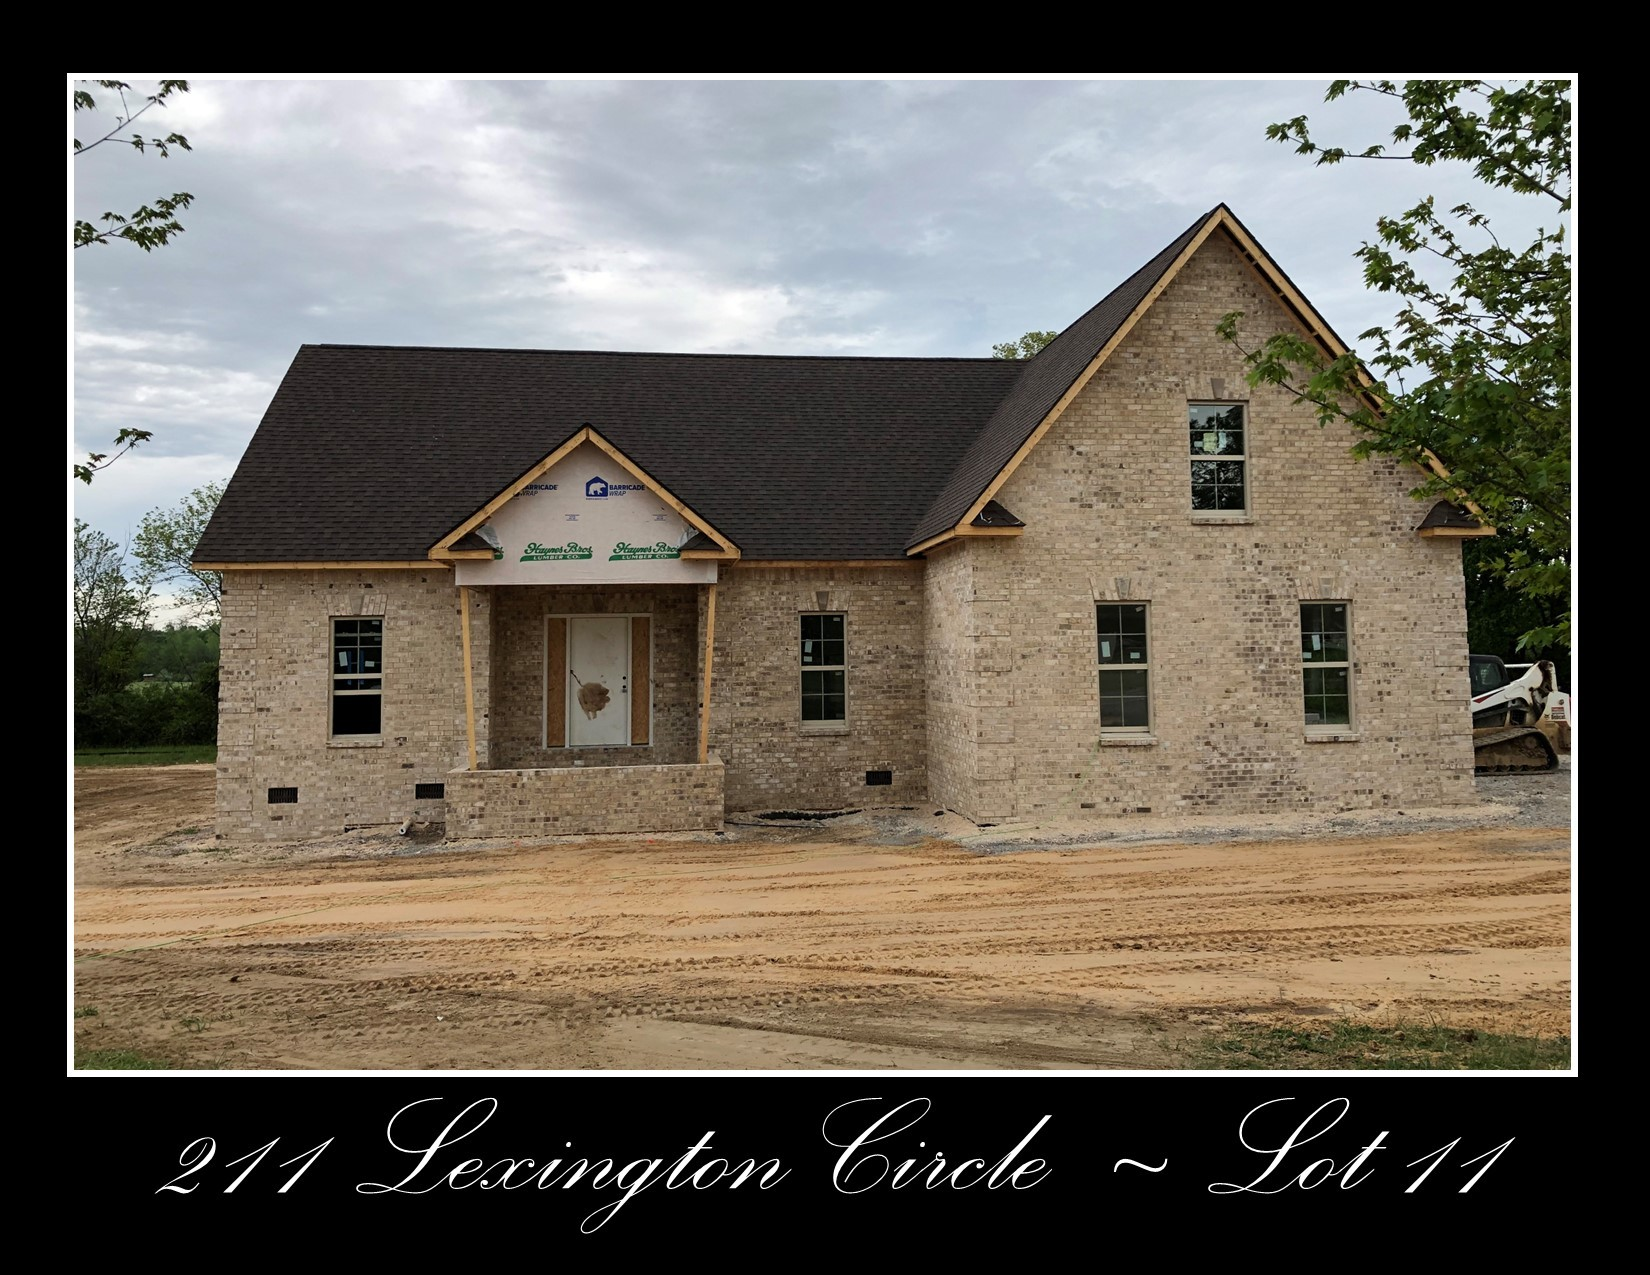 211 Lexington Circle, Manchester, Tennessee